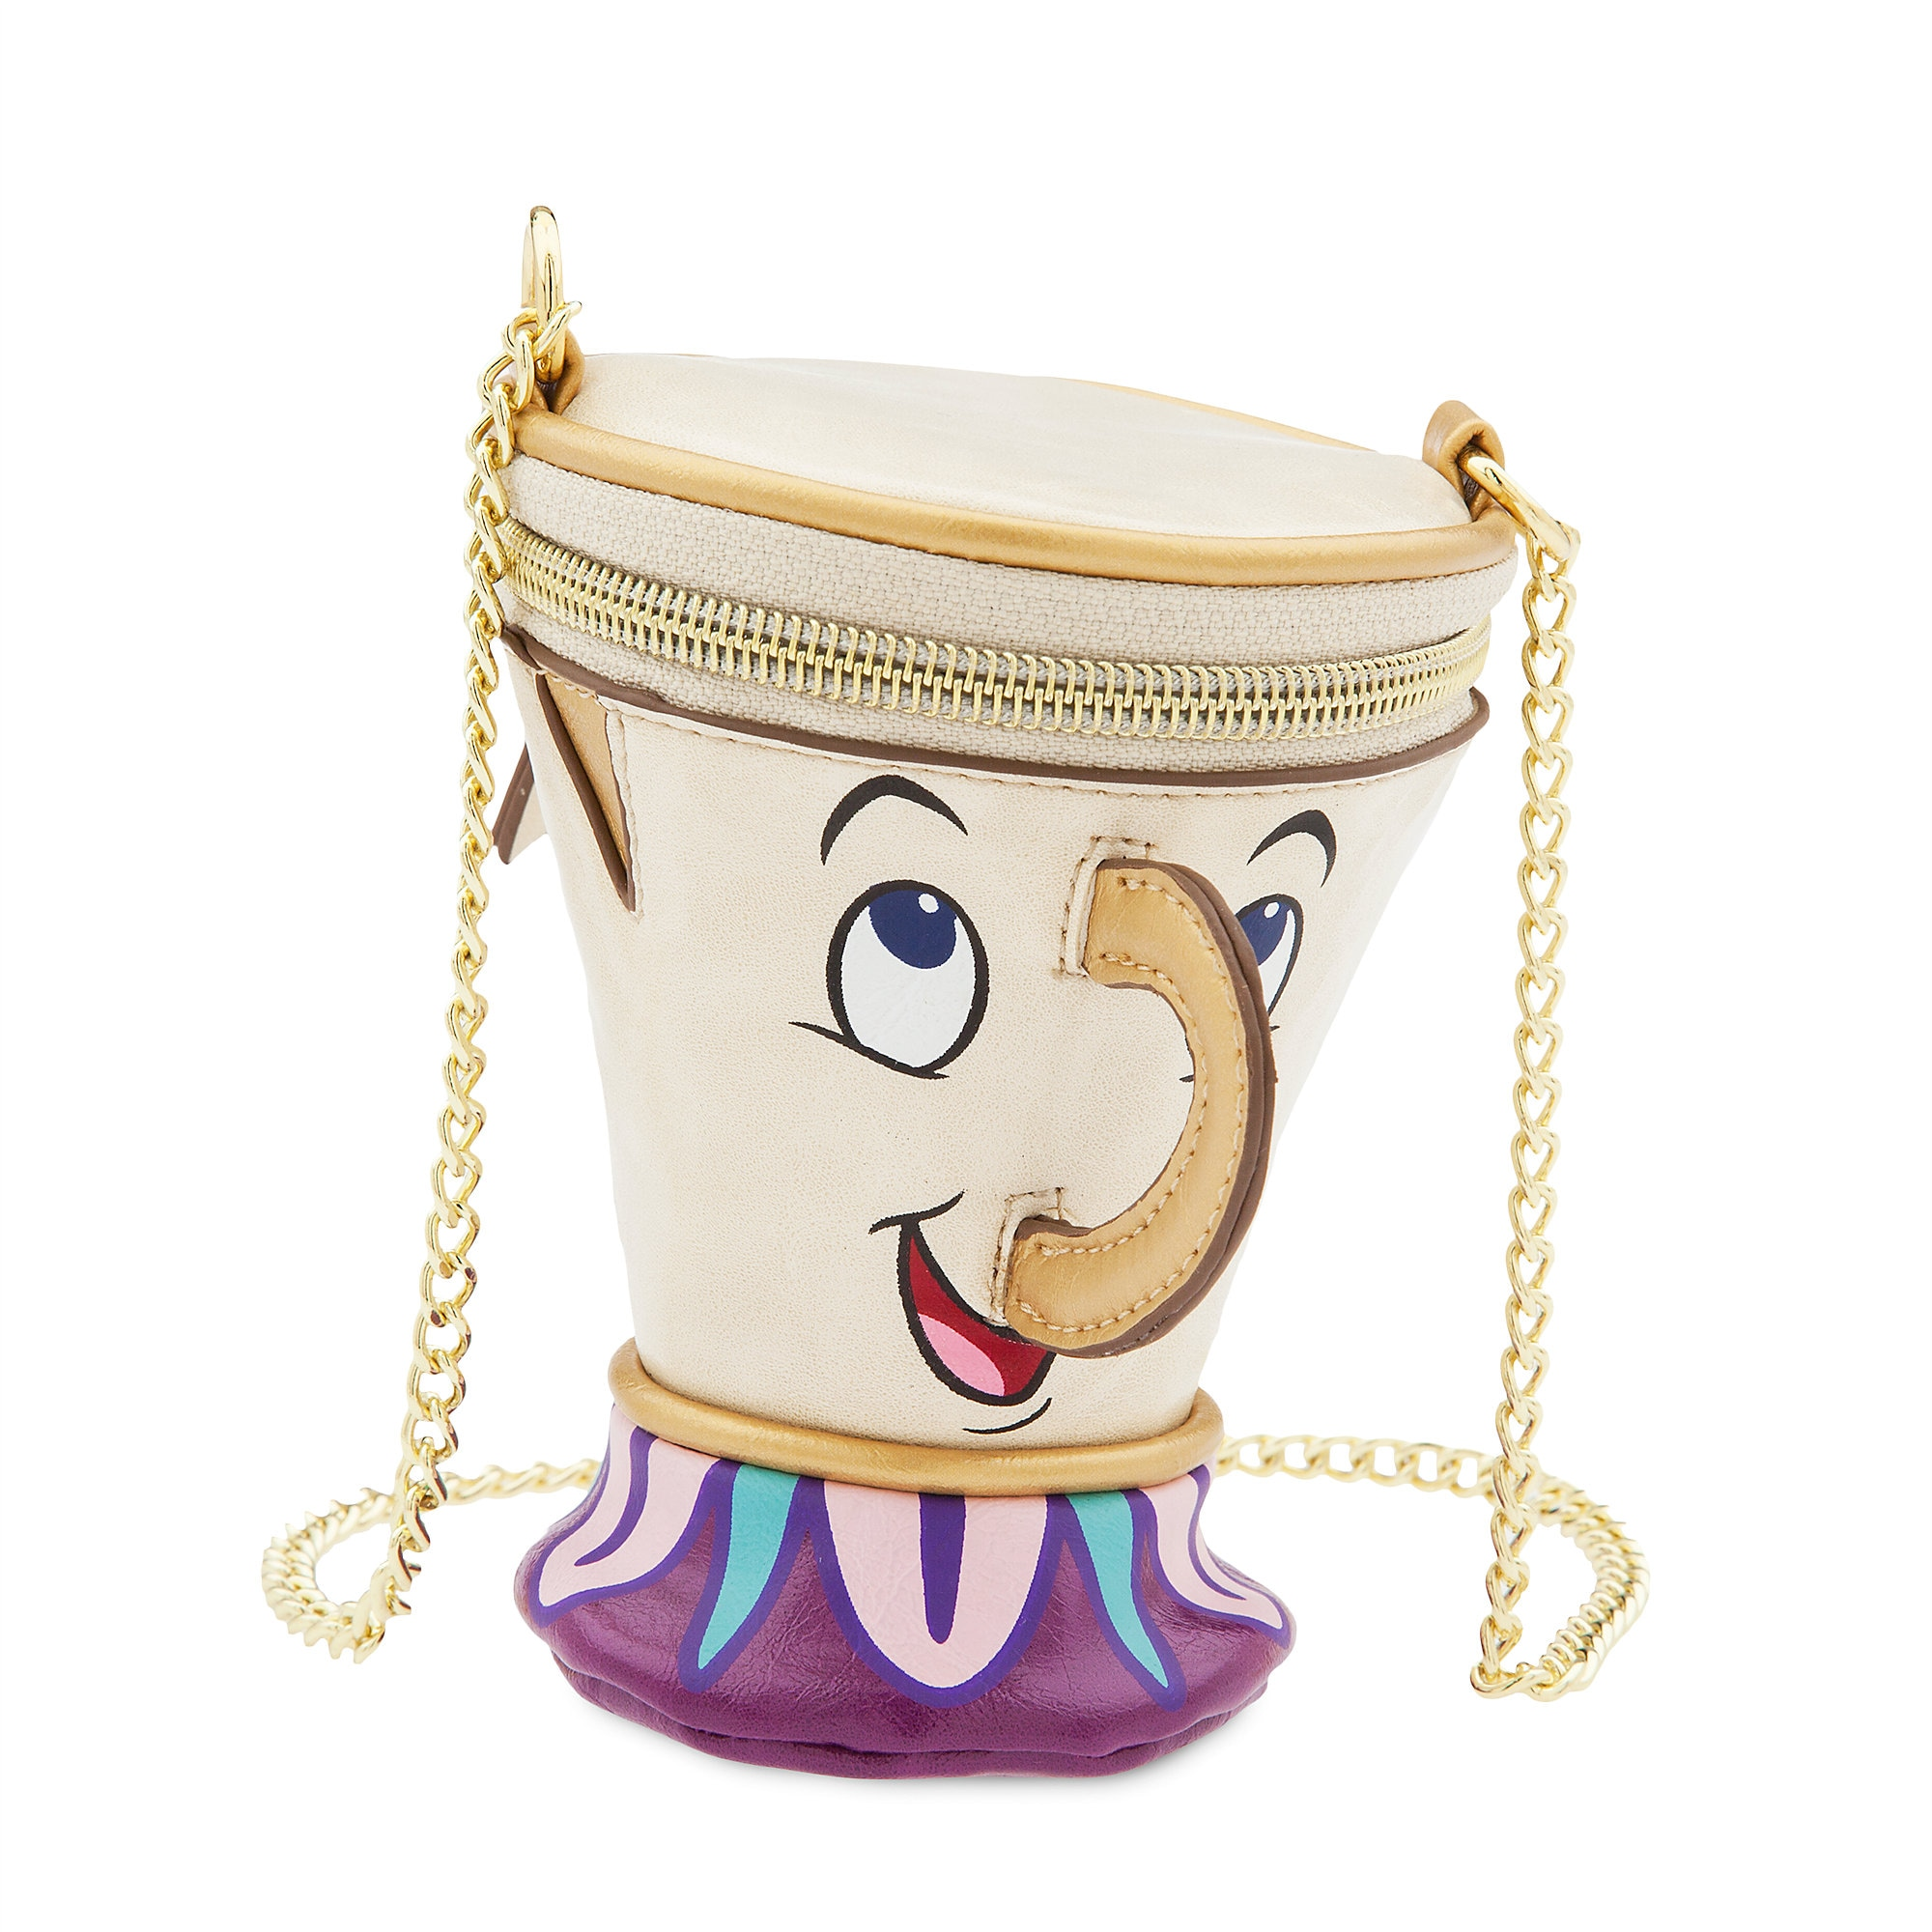 Chip Crossbody Bag - Beauty and the Beast - Danielle Nicole